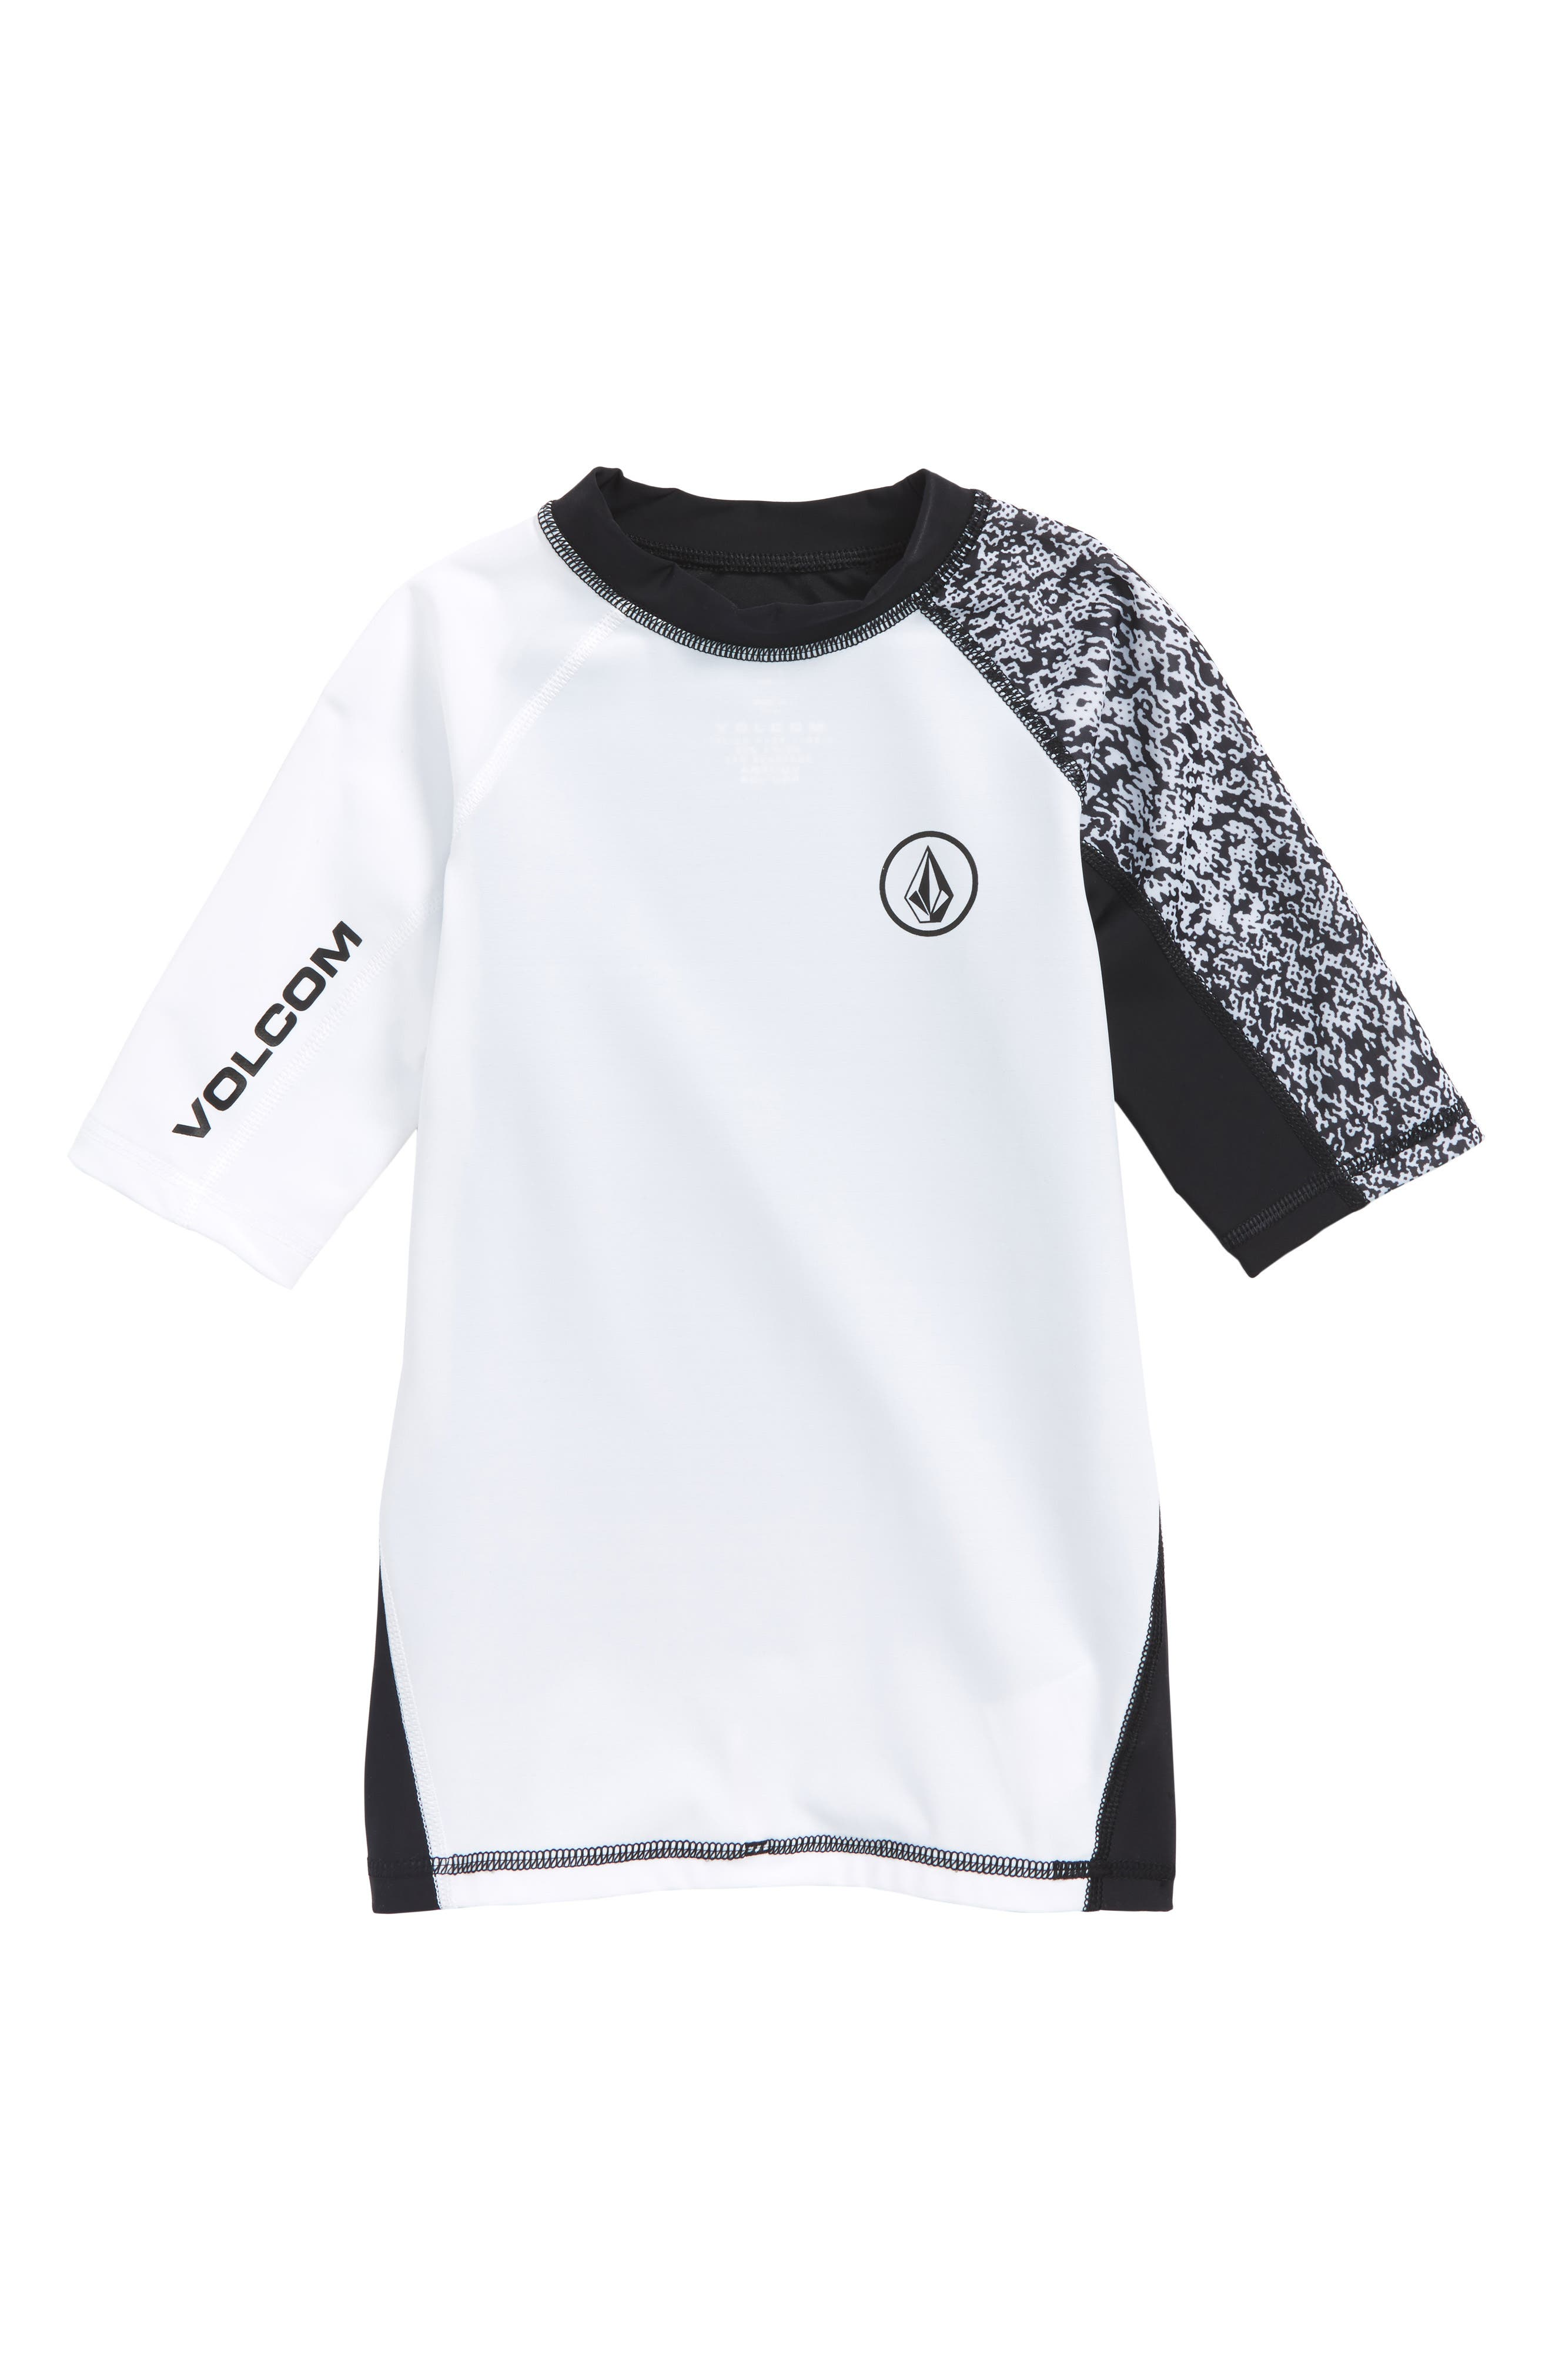 Volcom Lido Block Short Sleeve Rashguard (Big Boys)